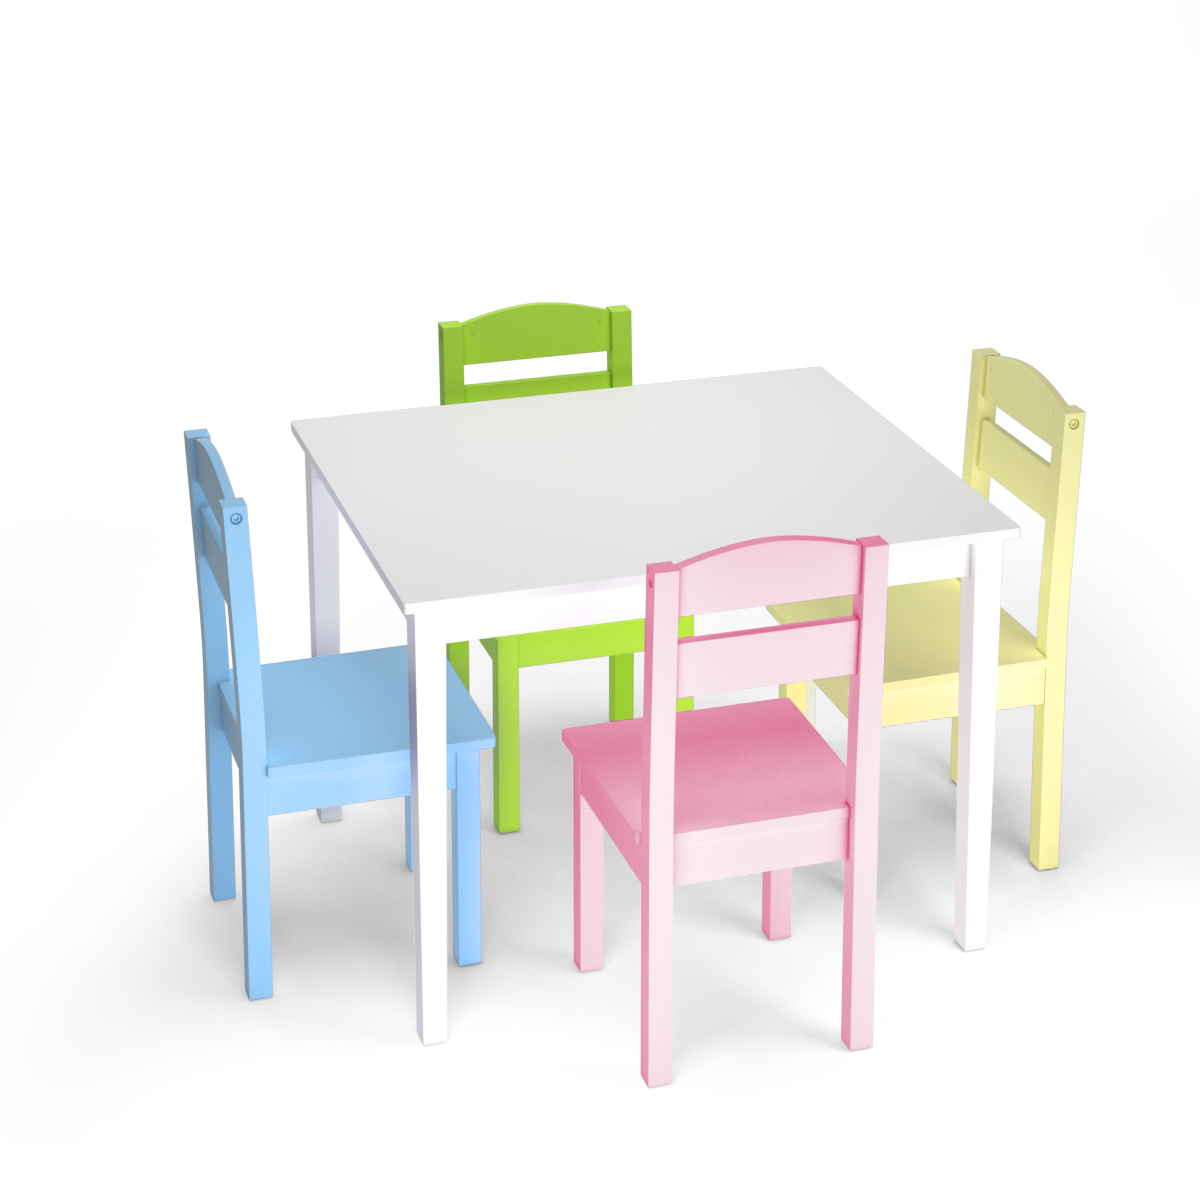 5 Piece Kids Play Table Chair Set Wood Activity Study Table W/ 4 Chairs Colorful